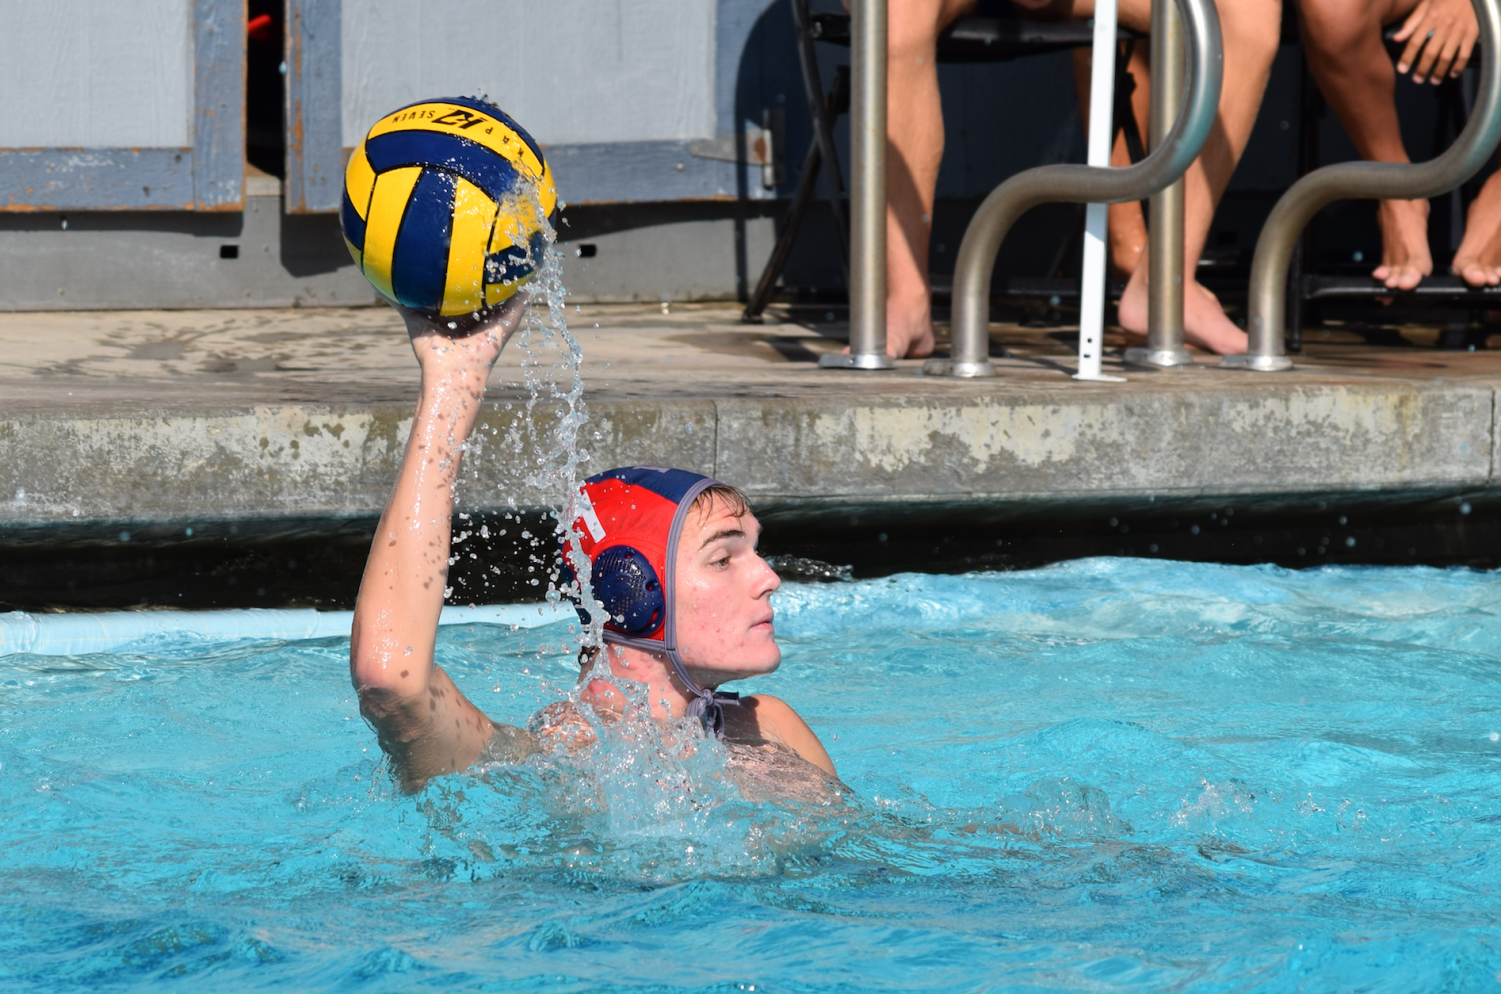 Brookbalnks '19 pushes to the offense against Brentwood.